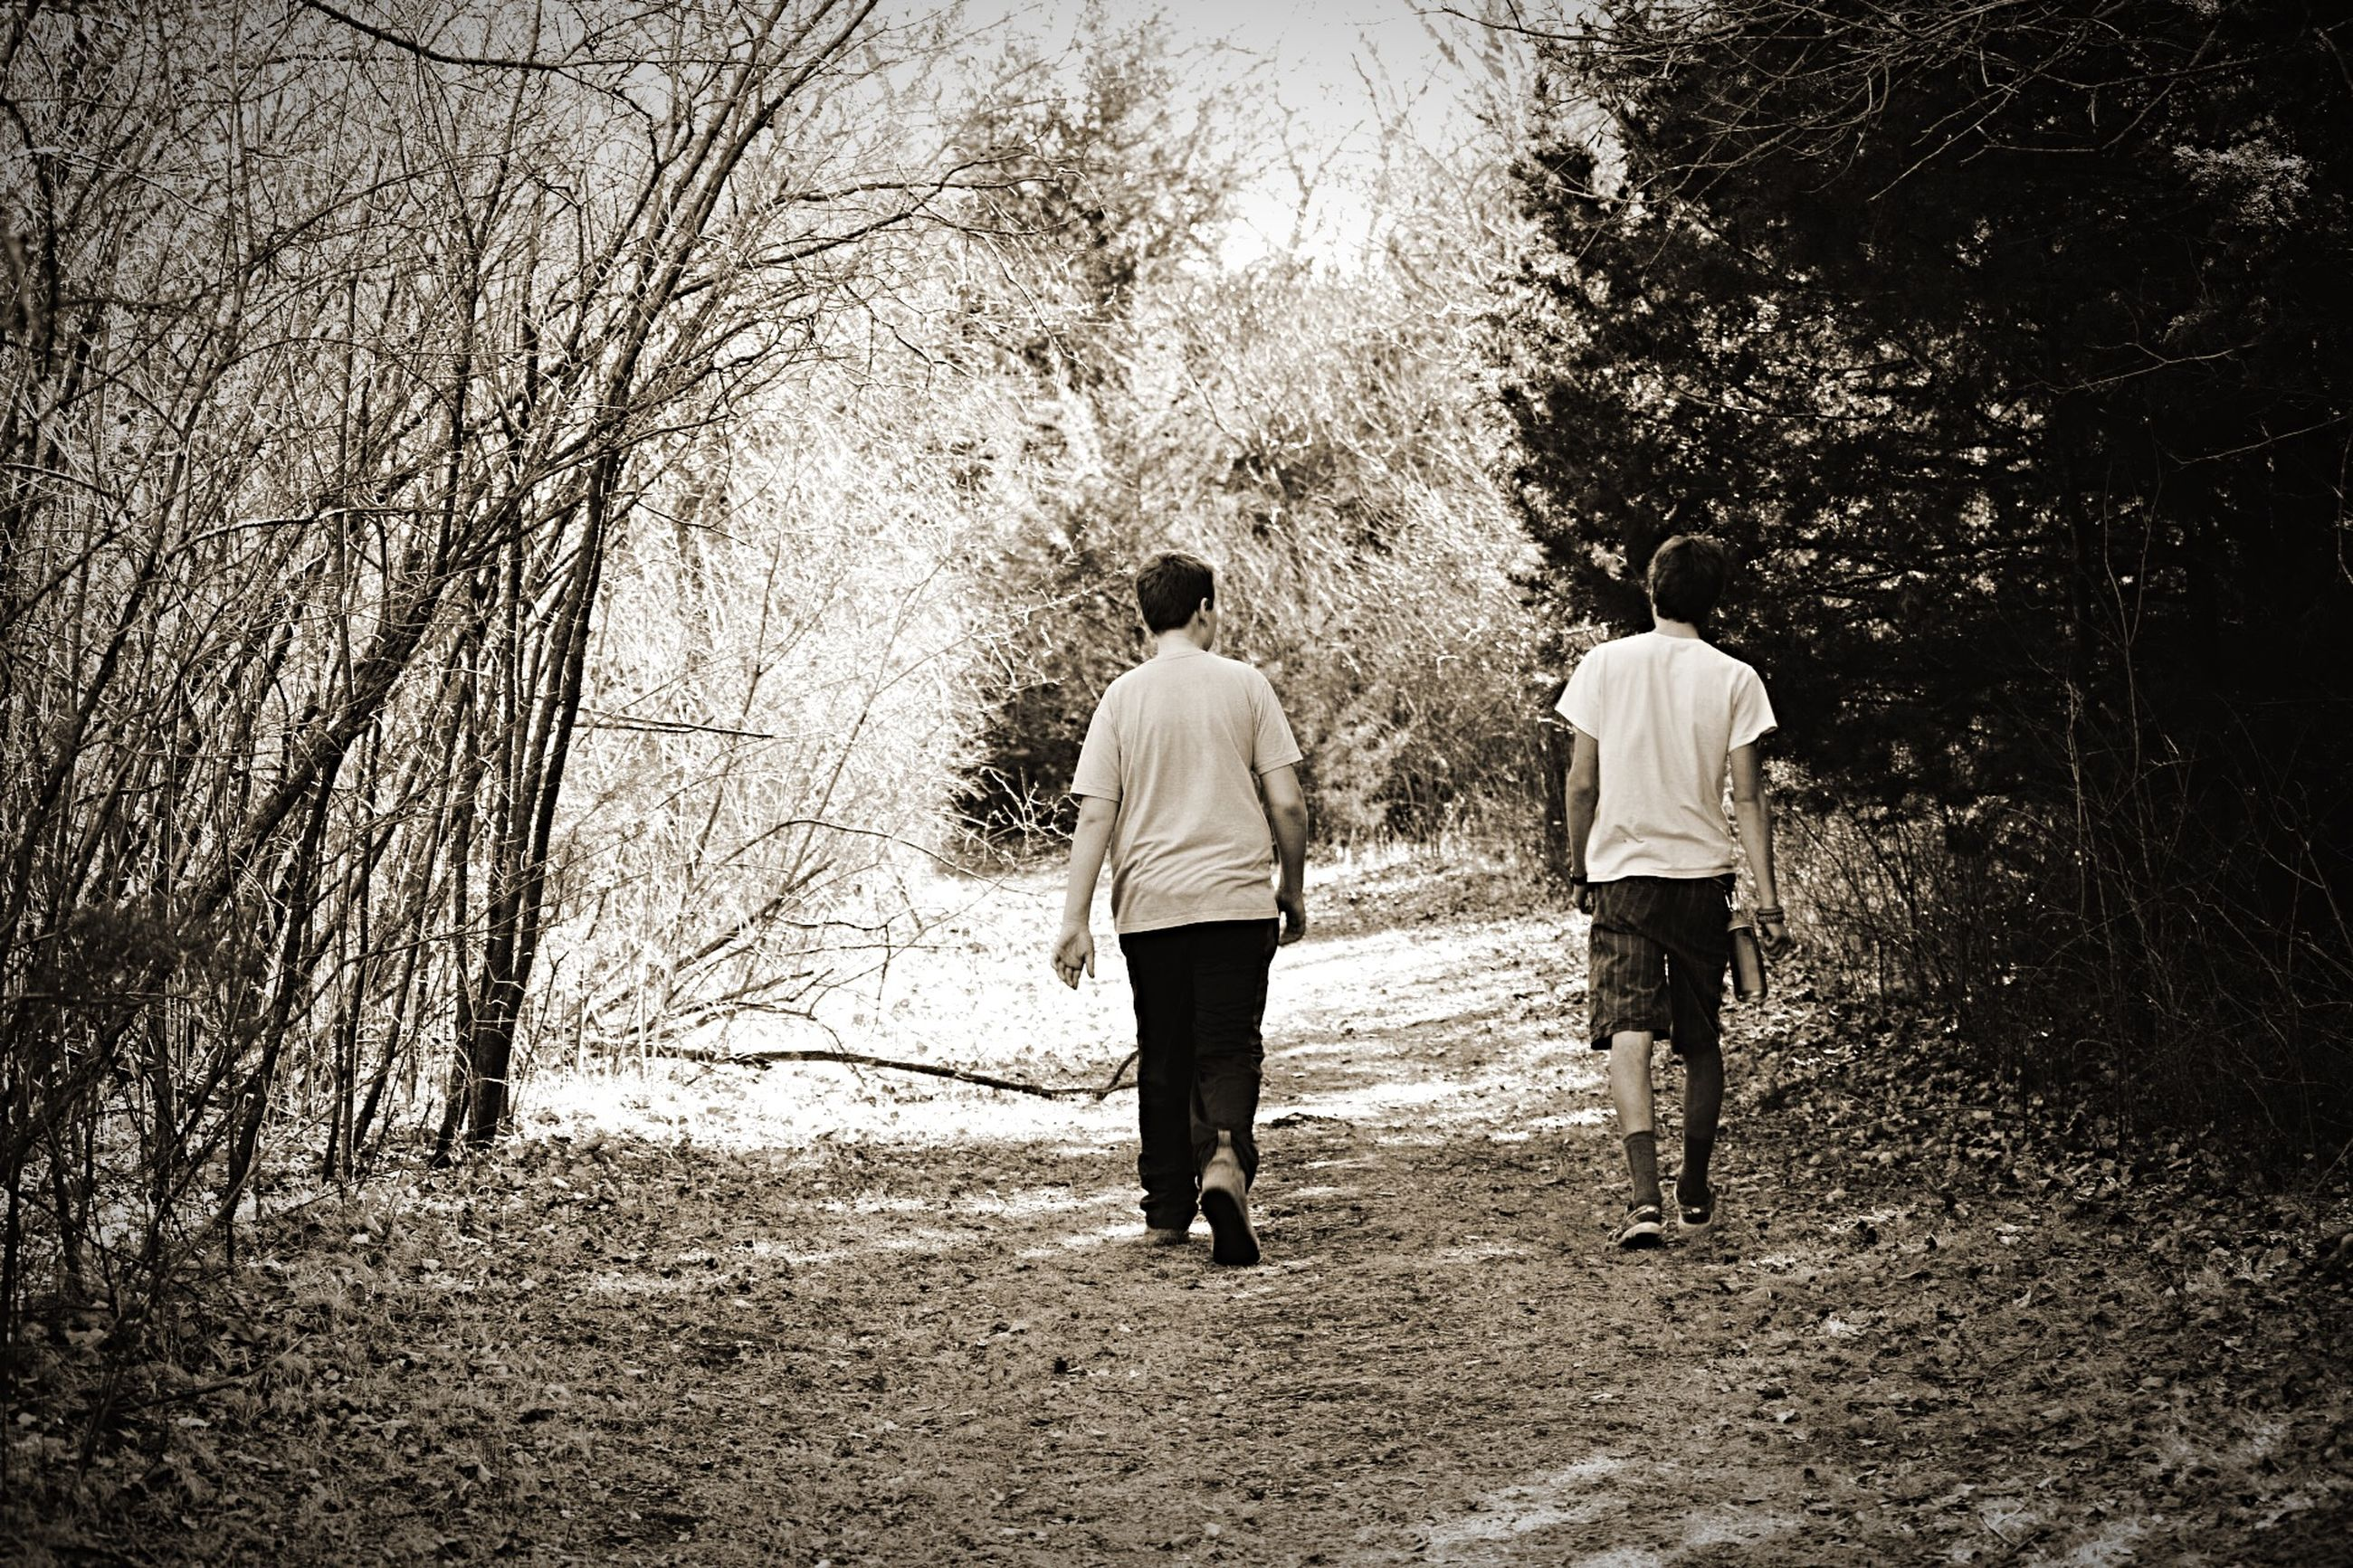 rear view, full length, walking, tree, lifestyles, men, leisure activity, person, togetherness, casual clothing, the way forward, standing, footpath, boys, nature, bonding, outdoors